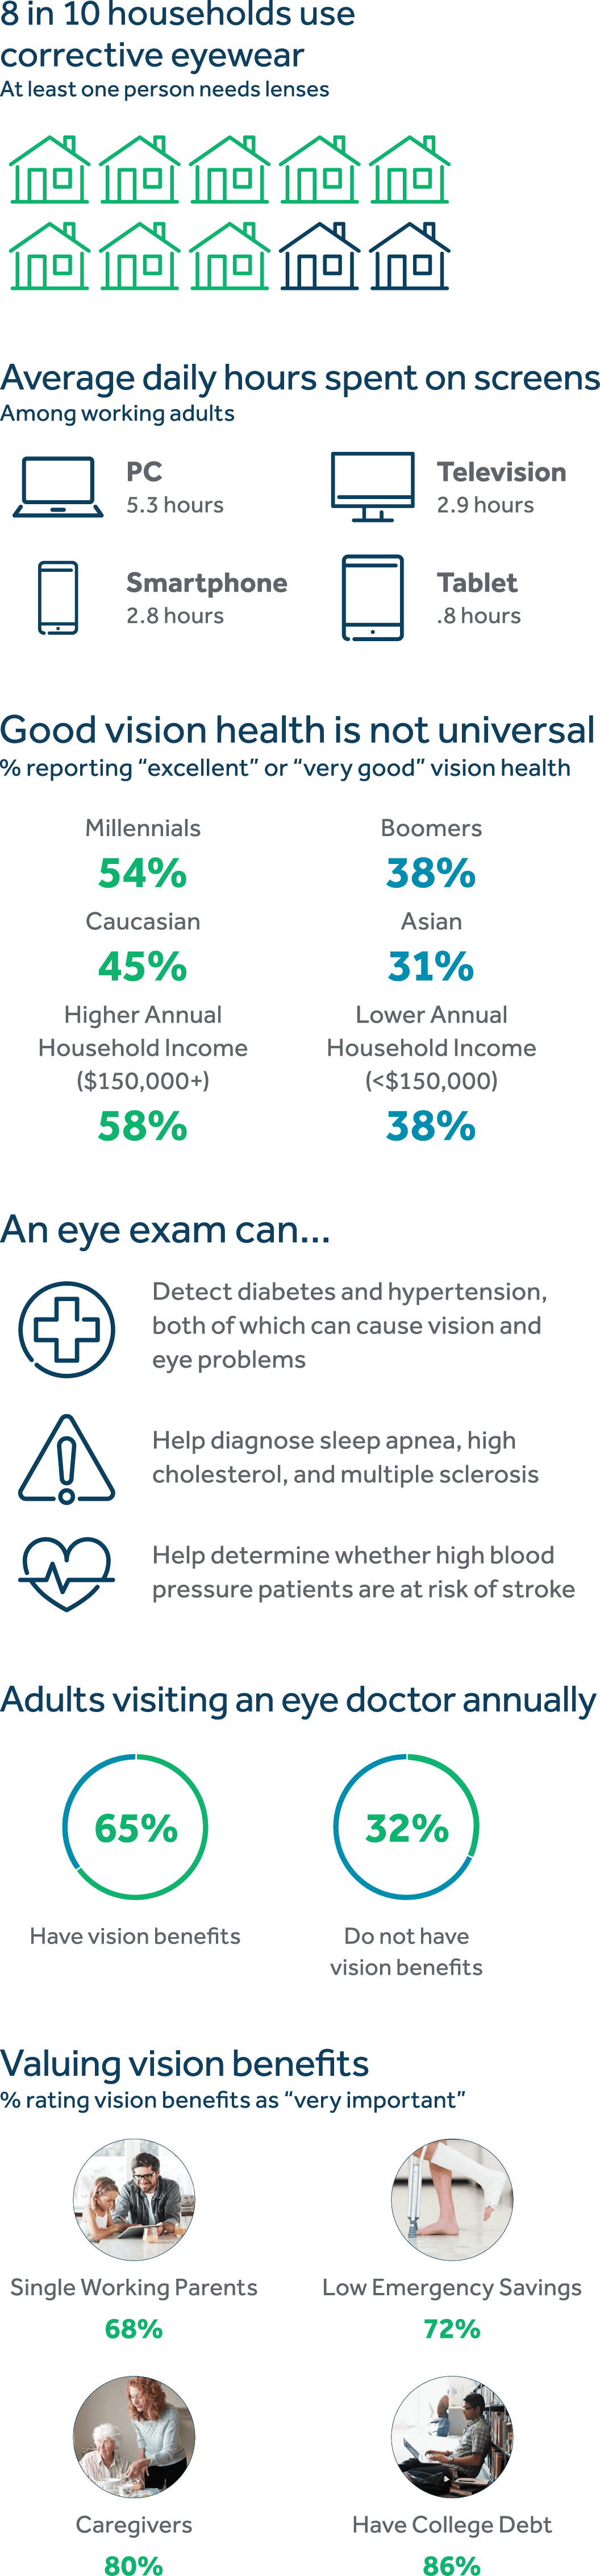 2019 vision report infographic